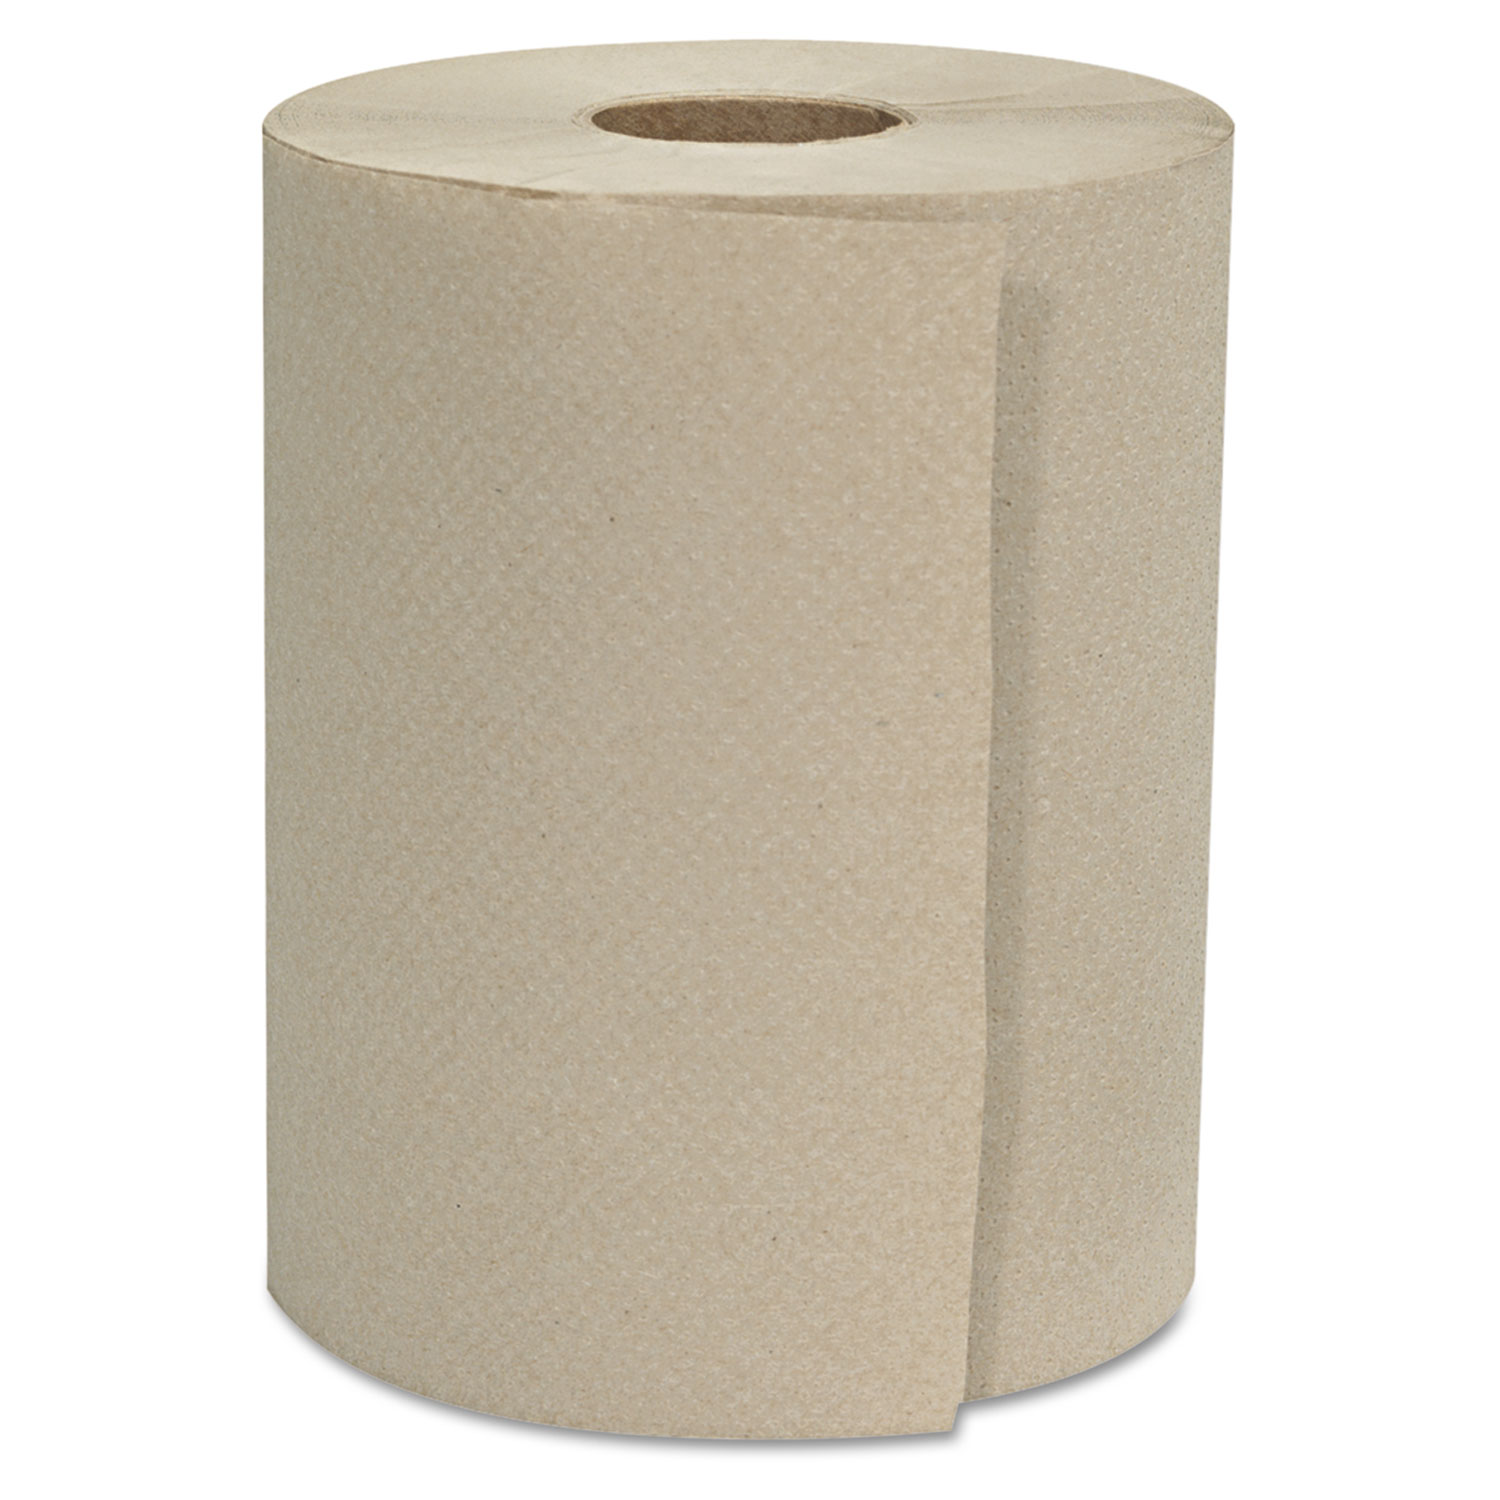 """Hardwound Roll Towels, 1-Ply, Natural, 8"""" x 800 ft, 6 Rolls/Carton"""